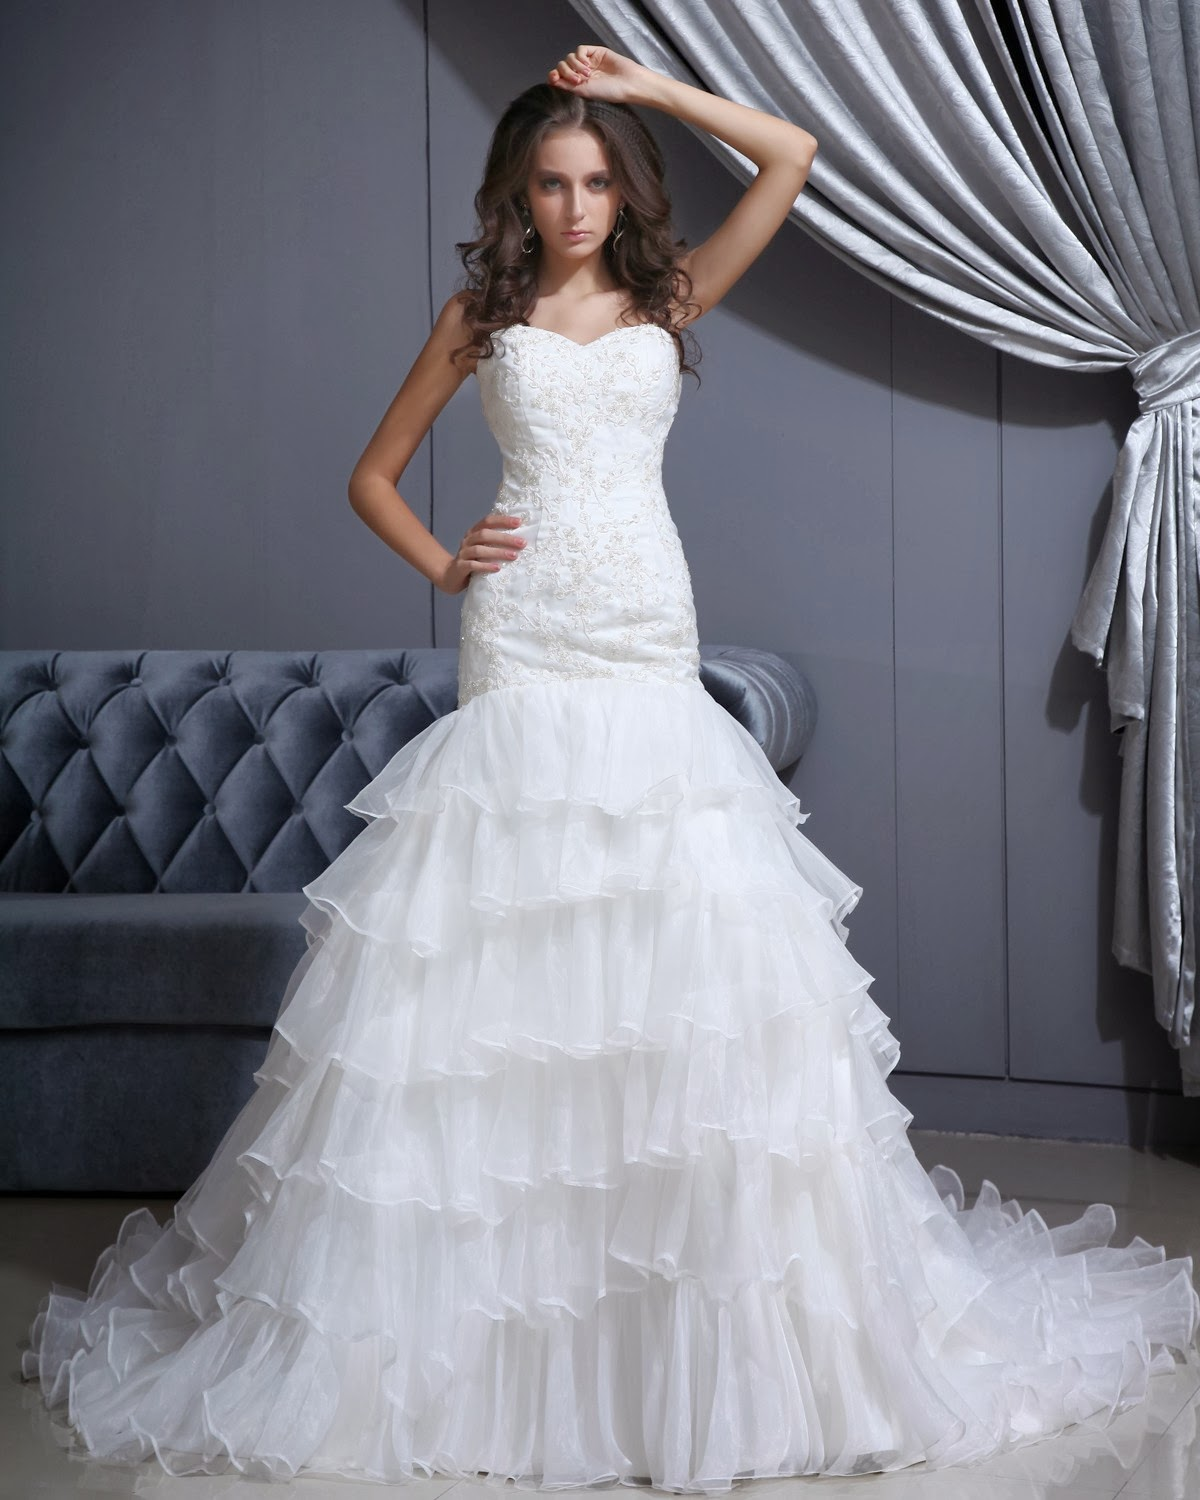 Wedding Dresses: Wedding Dress: Finding Discount Wedding Gowns Online